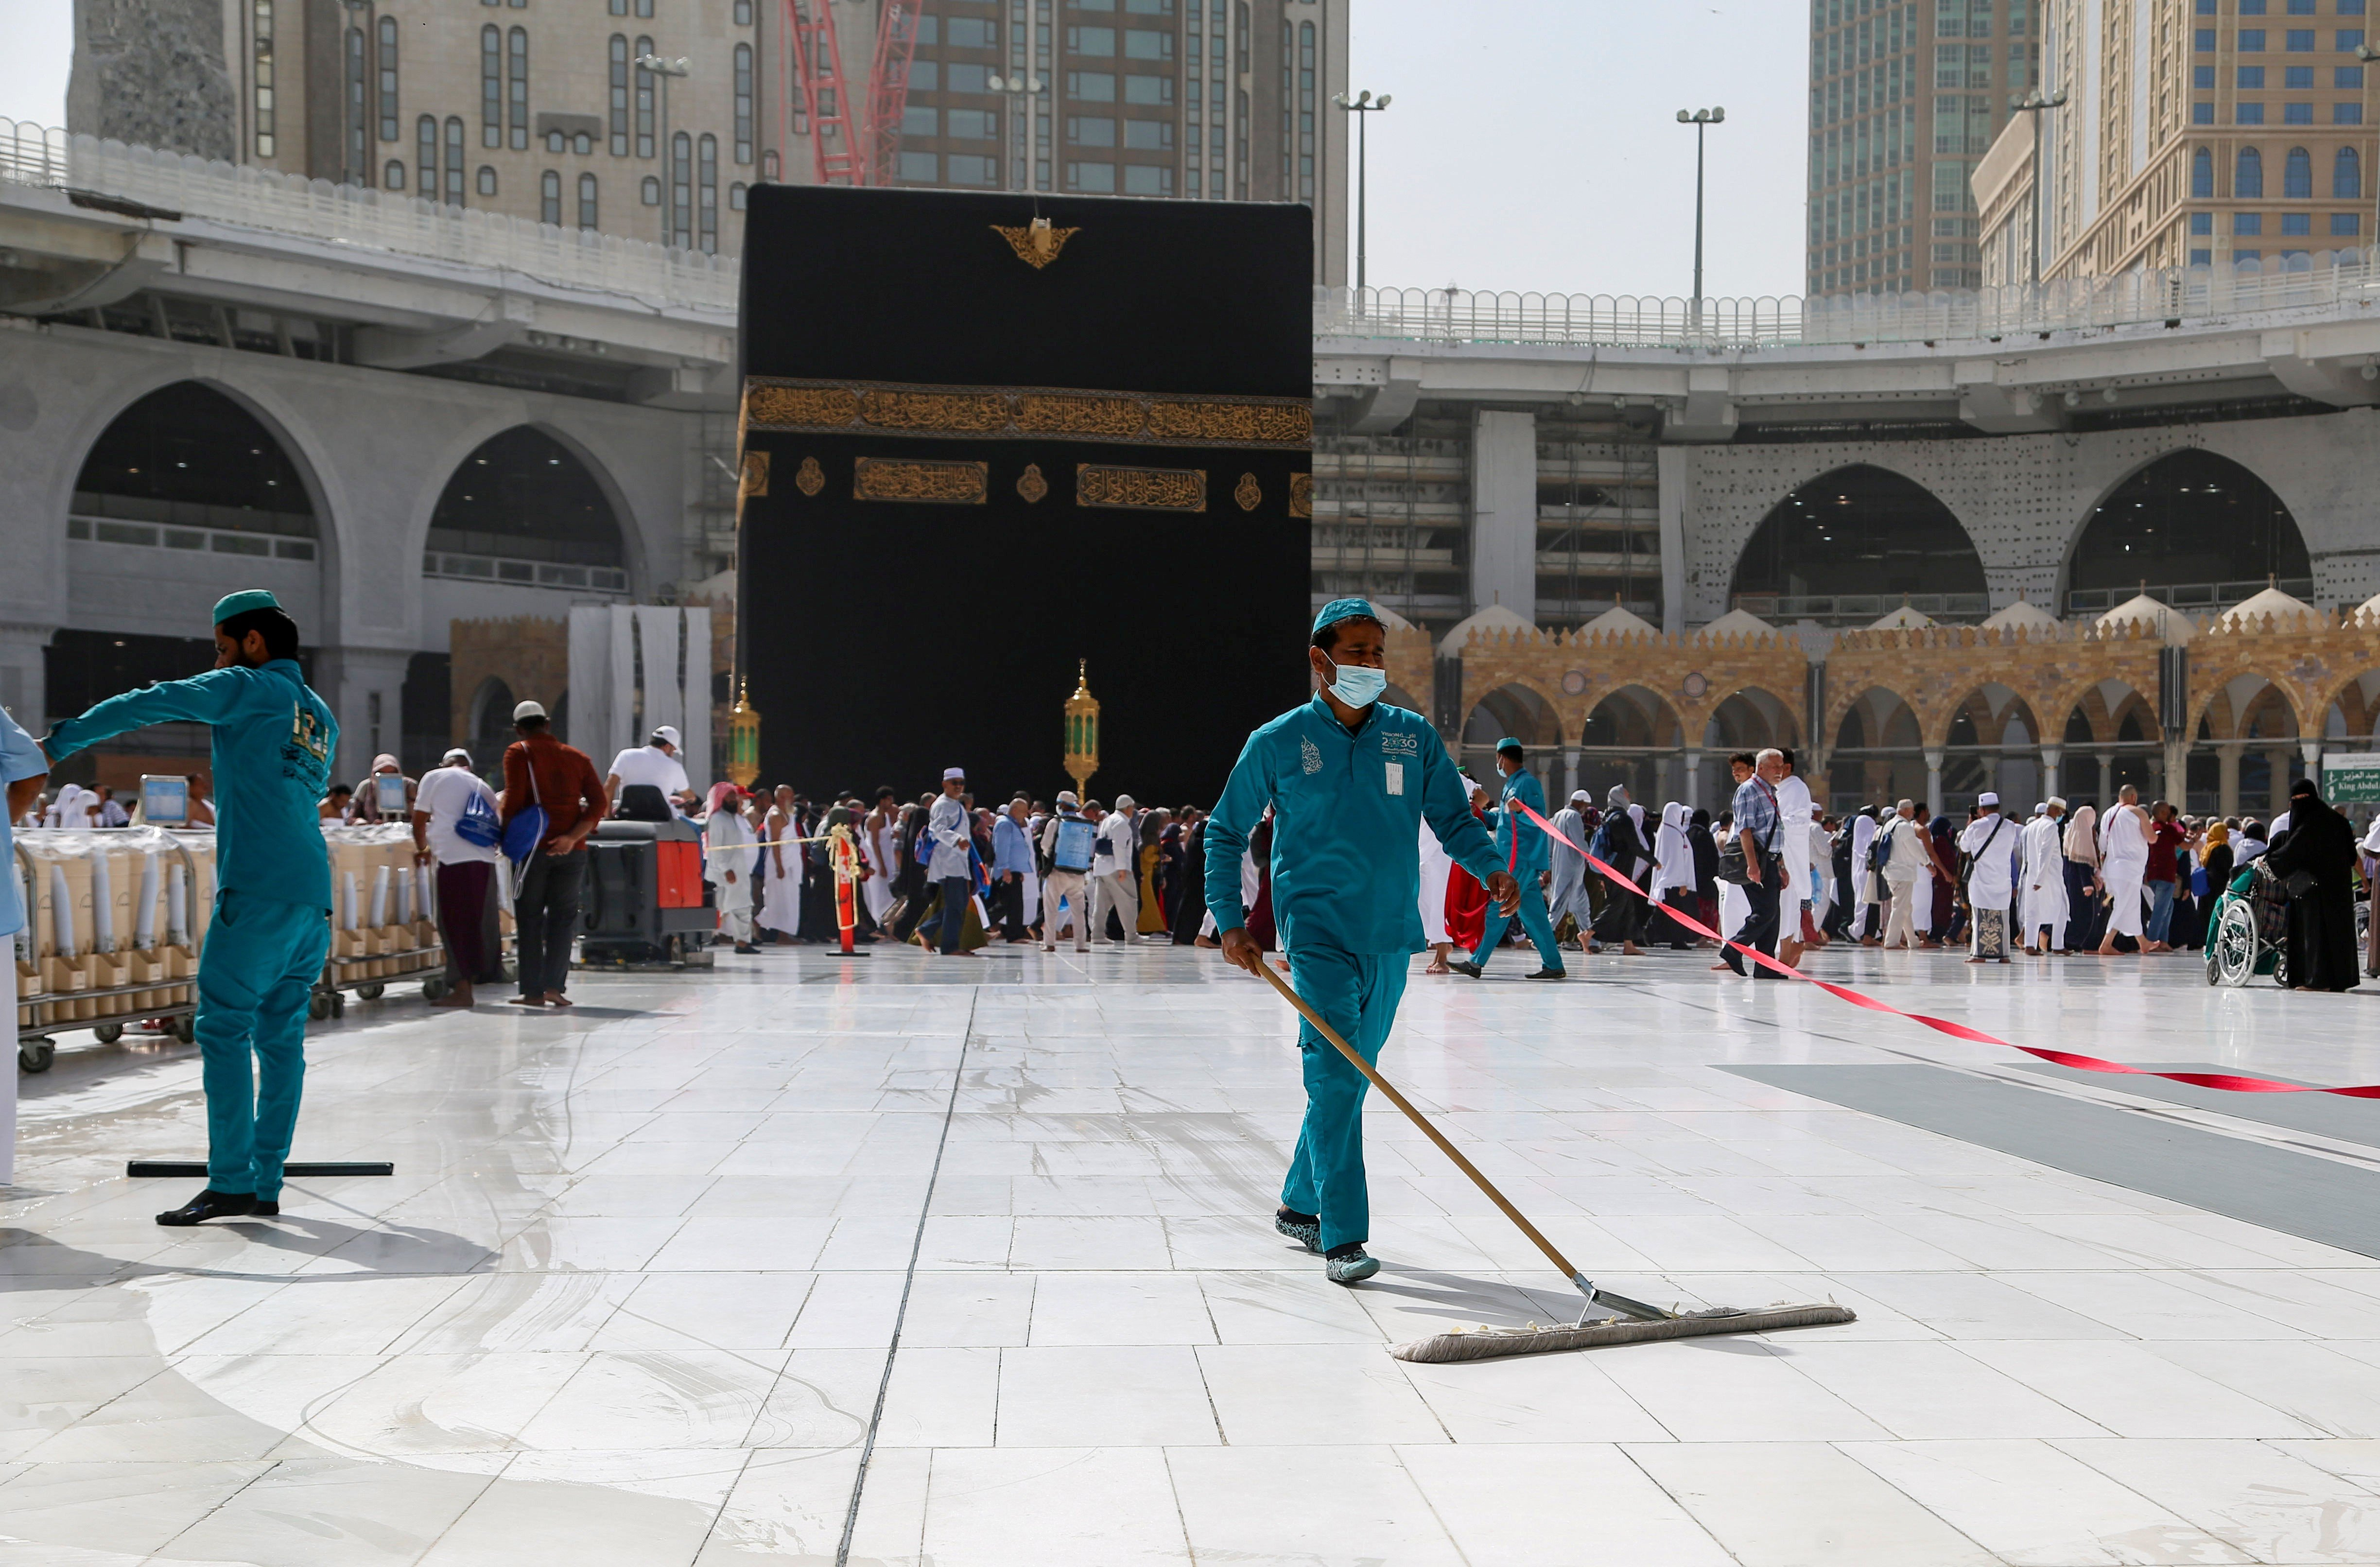 Cleaners wear protective face masks, following the outbreak of the coronavirus, as they swipe the floor at the Kaaba in the Grand mosque in the holy city of Mecca, Saudi Arabia March 3, 2020.